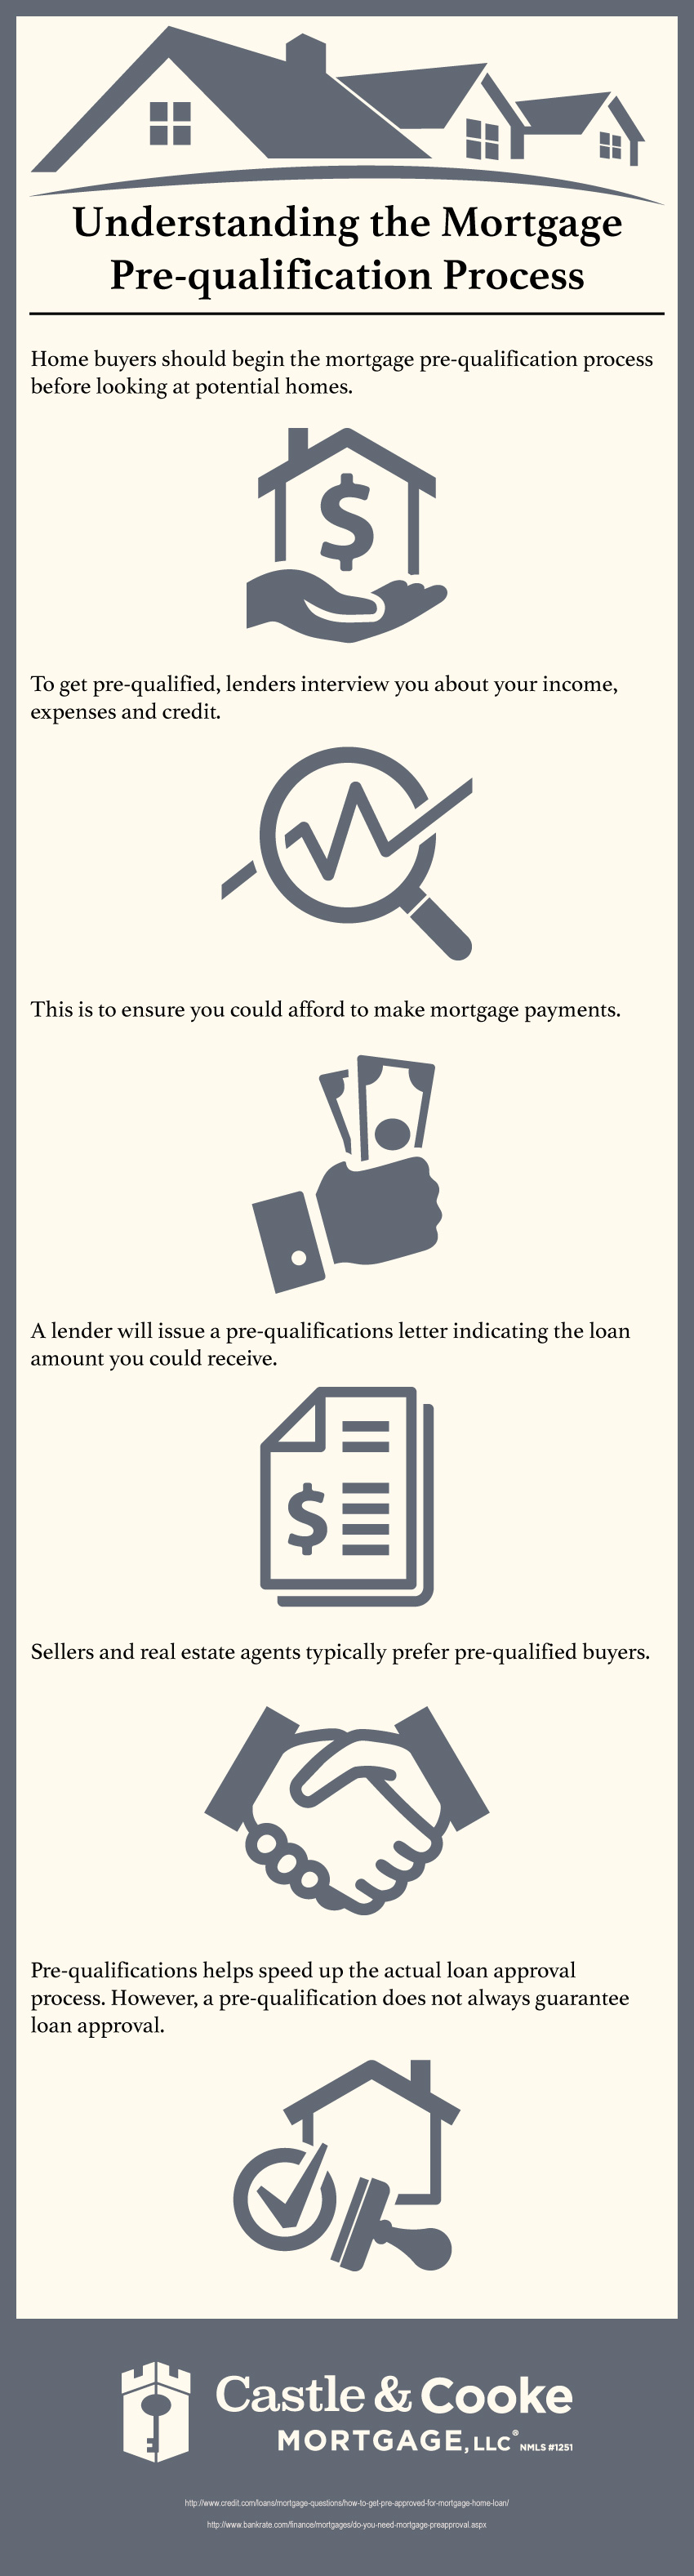 Understanding The Mortgage PreQualification Process  VisualLy